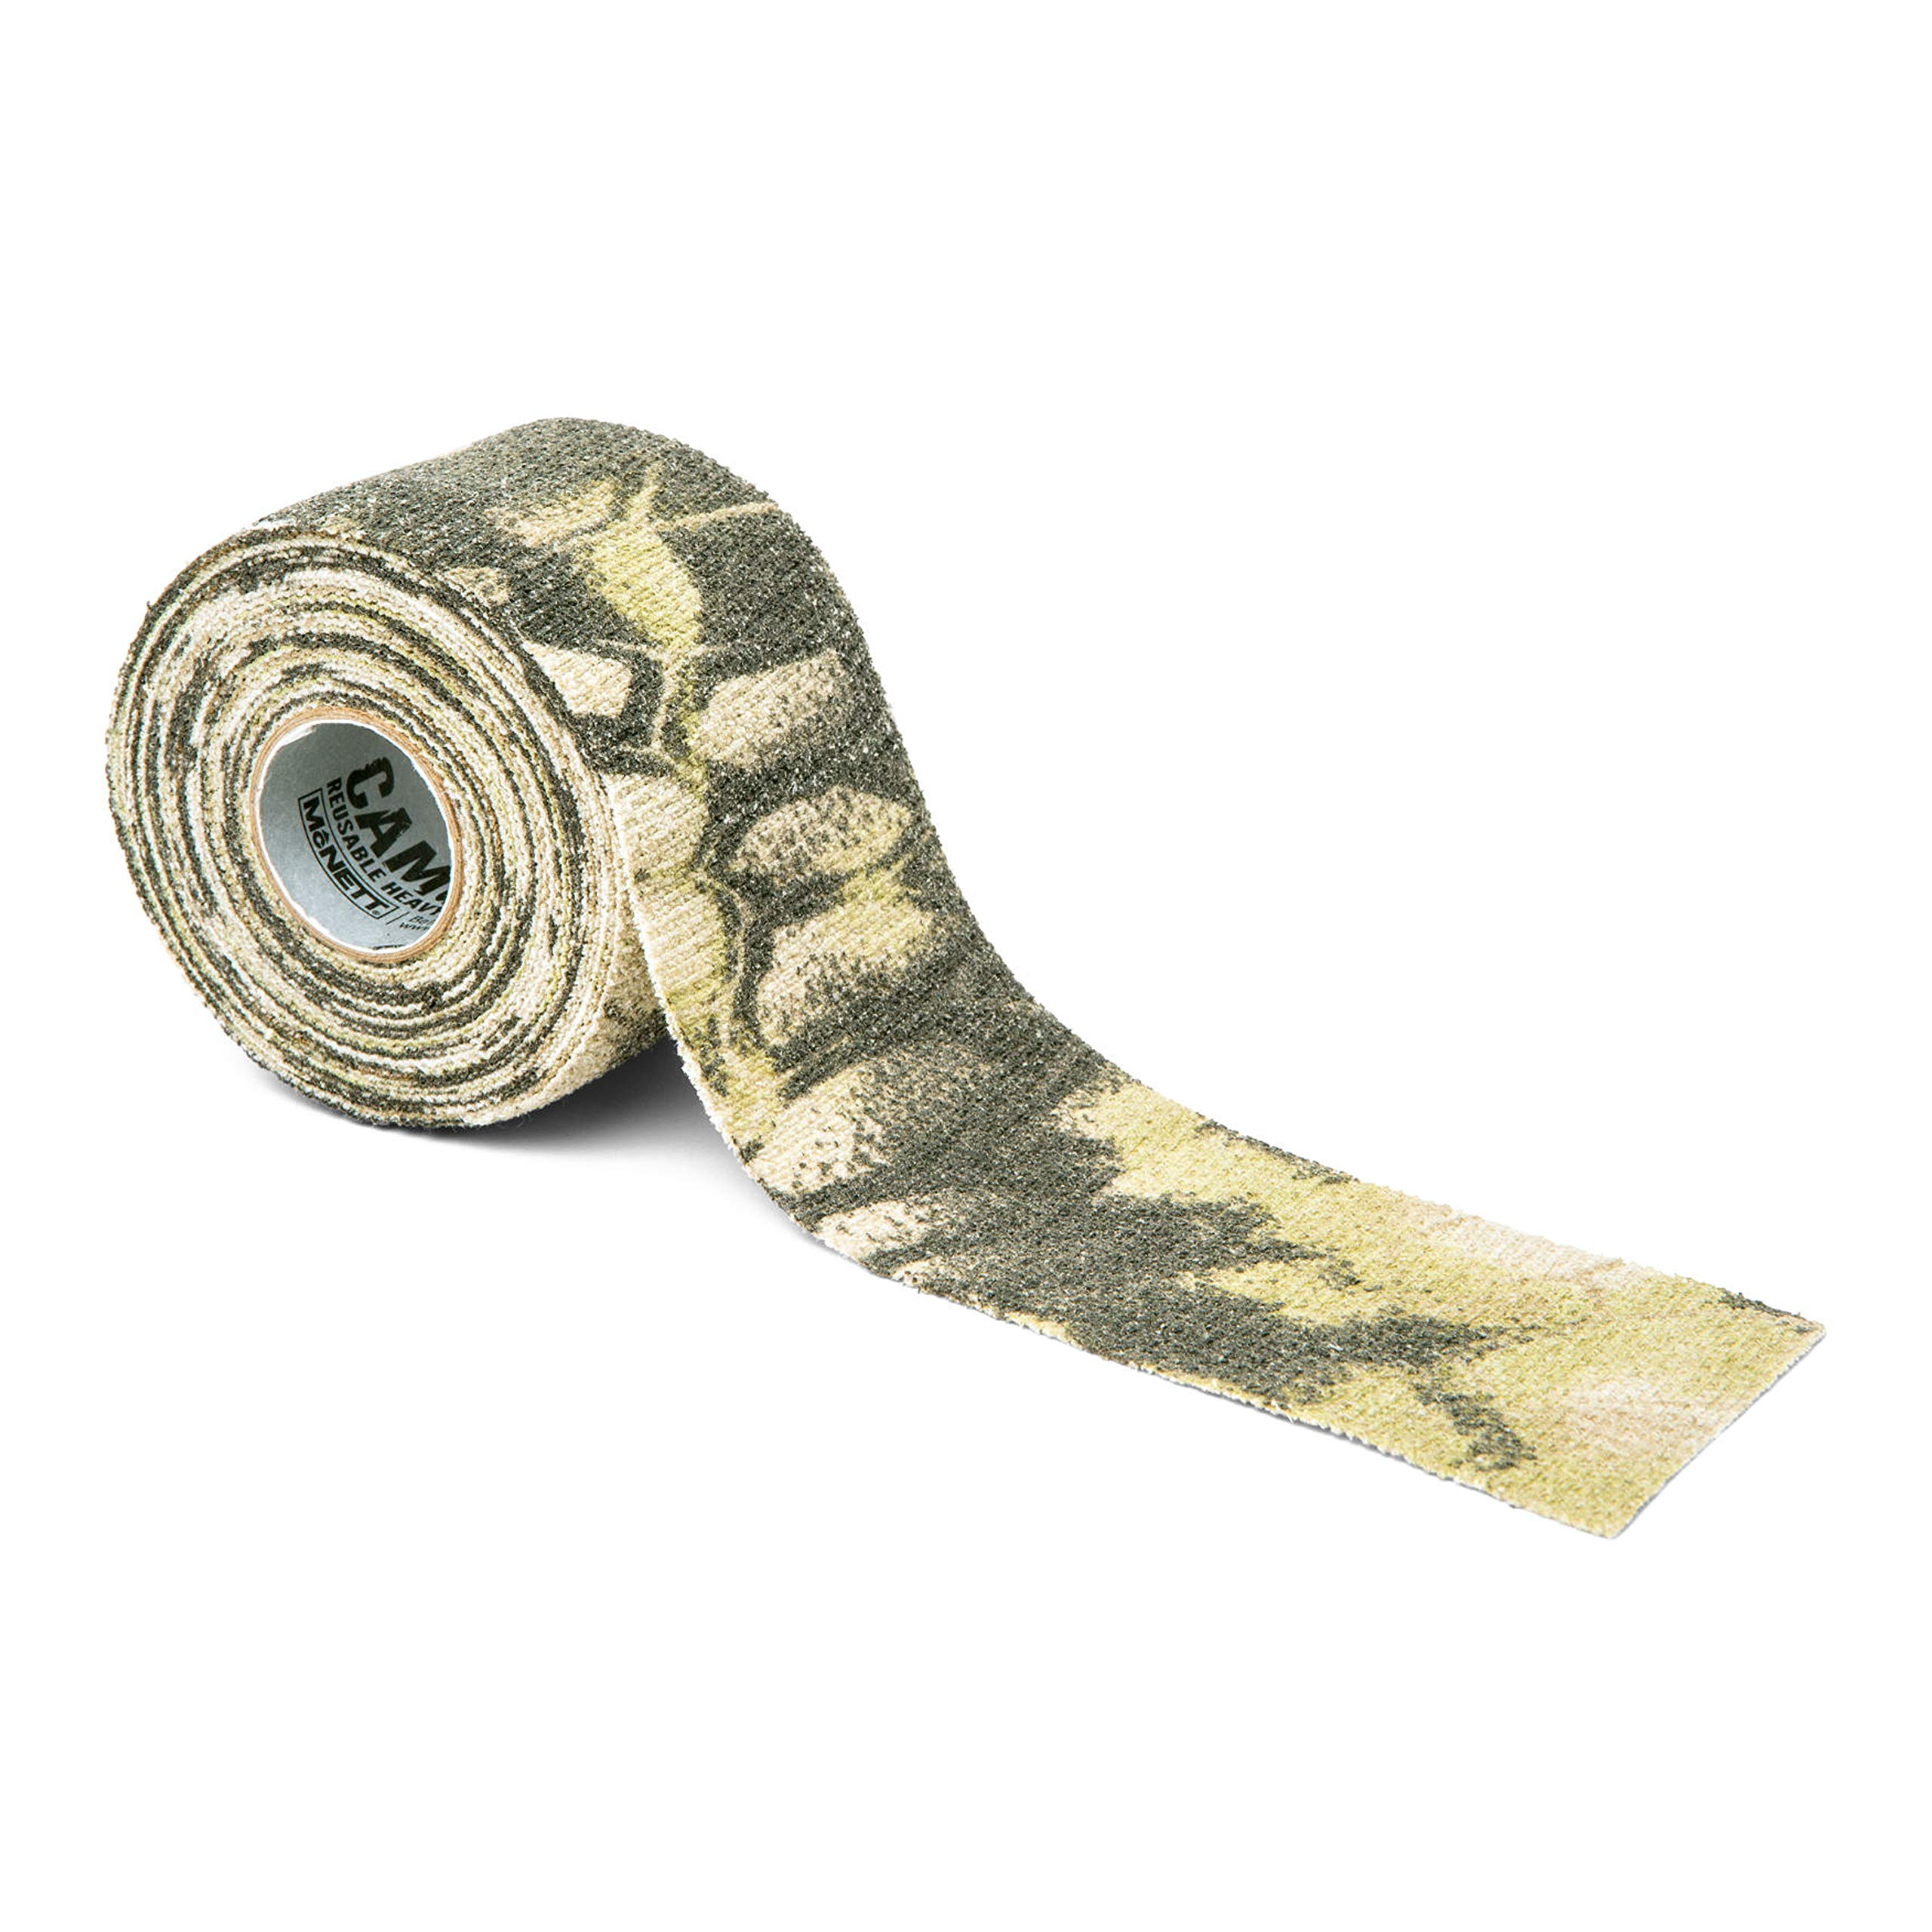 GEAR AID Camo Form Self-Cling and Reusable Camouflage Wrap, Kryptek Highlander, 2'' x 144'' Roll by GEAR AID